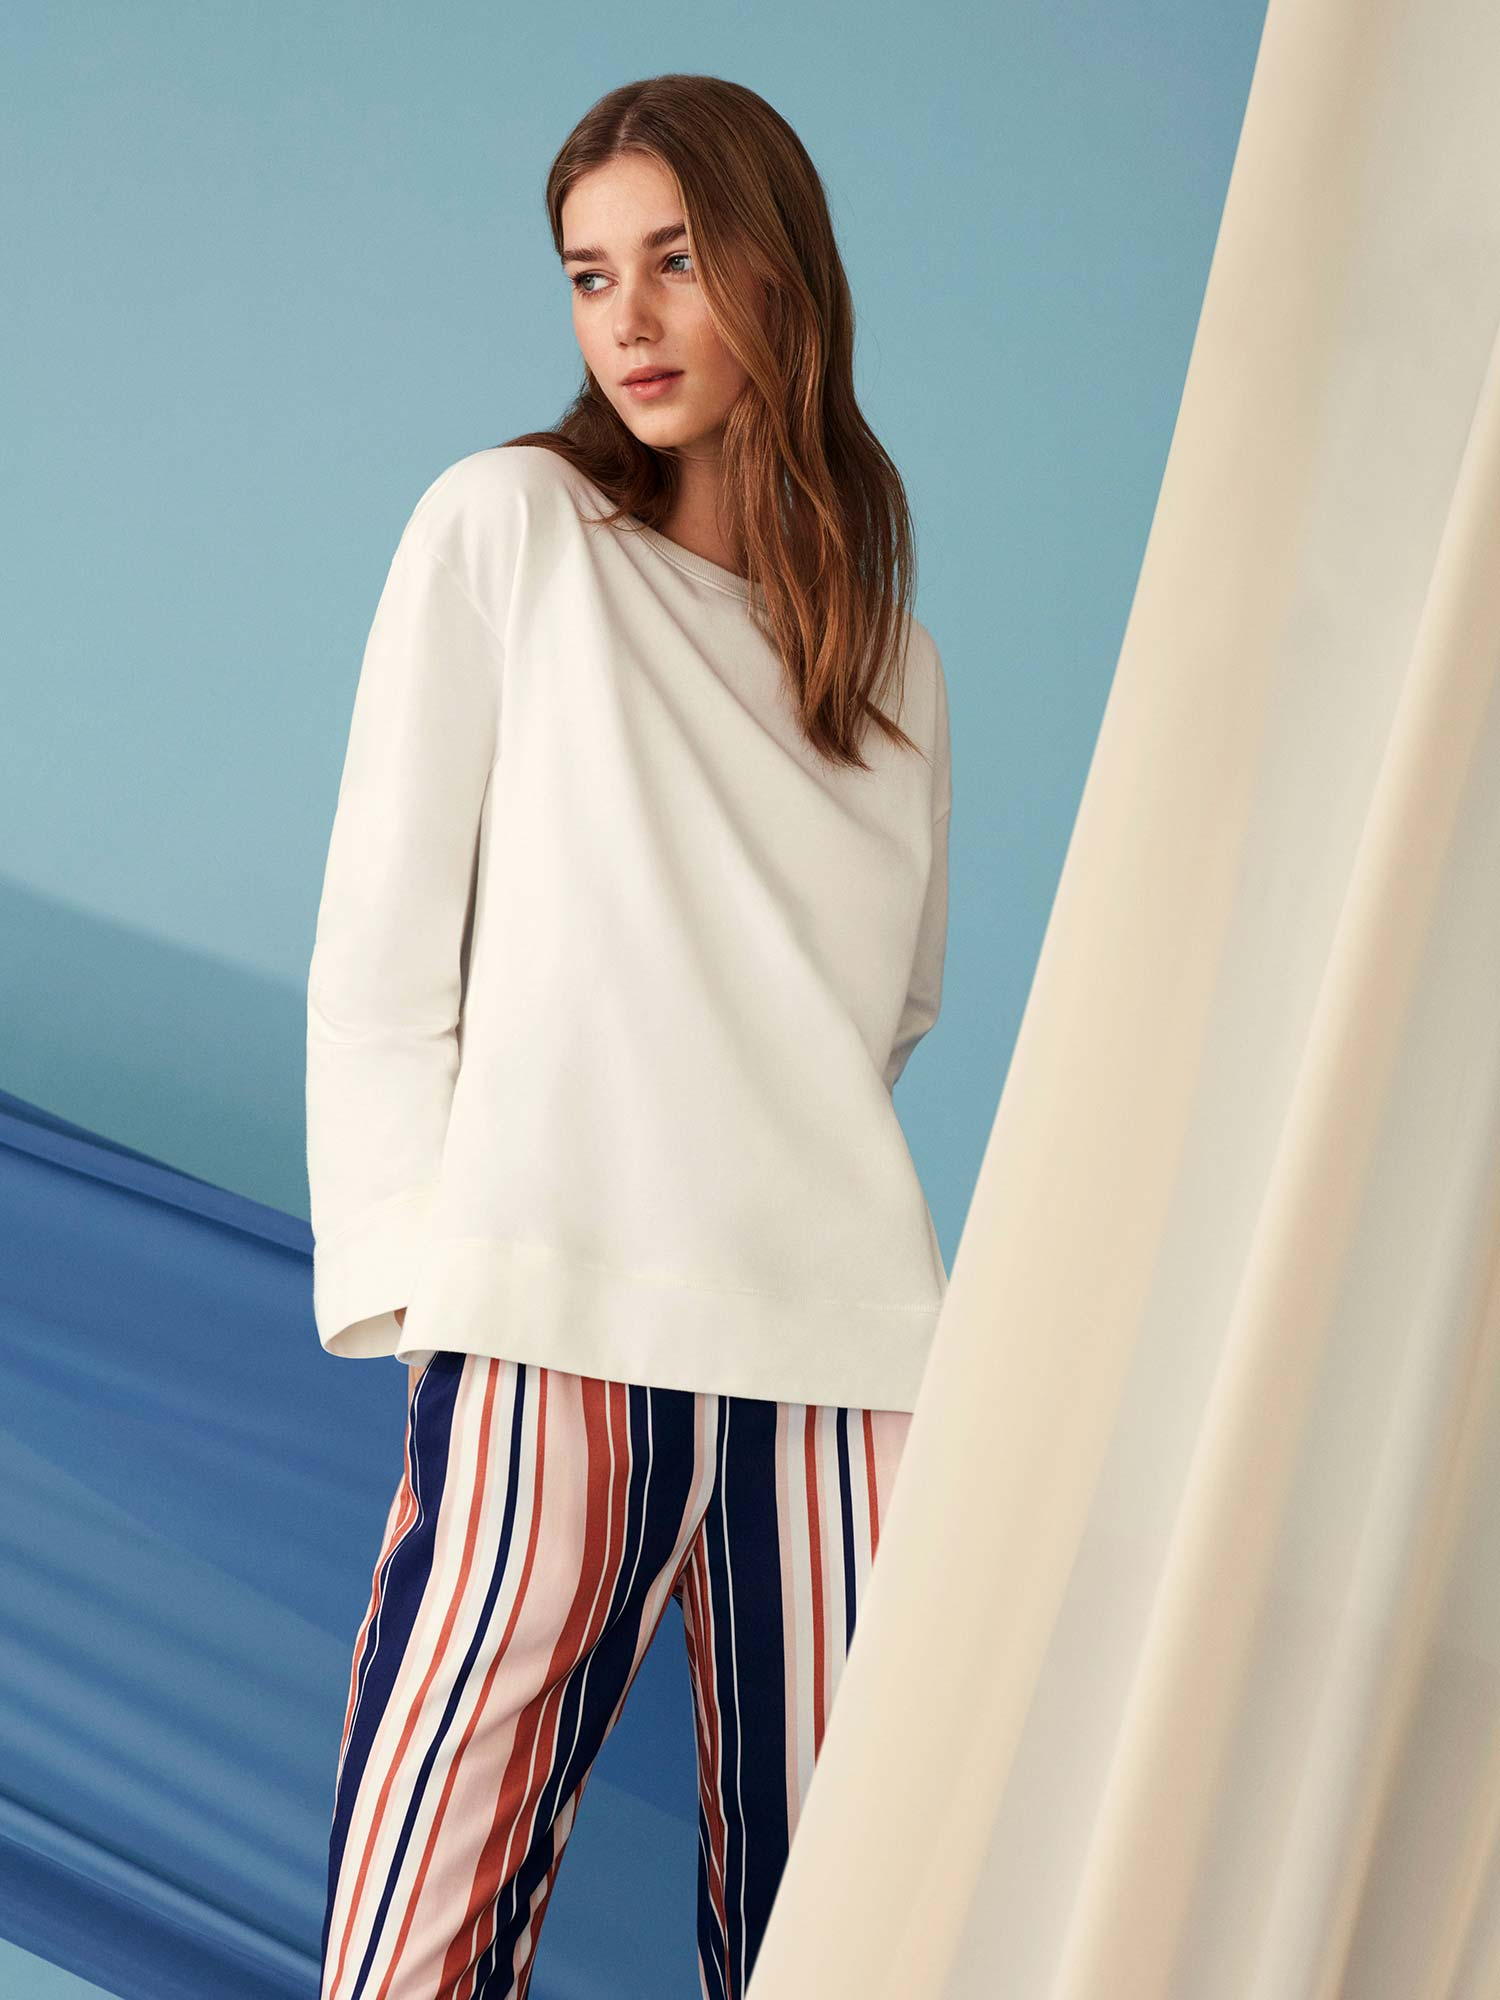 Stylish loungewear for day and night   mey®